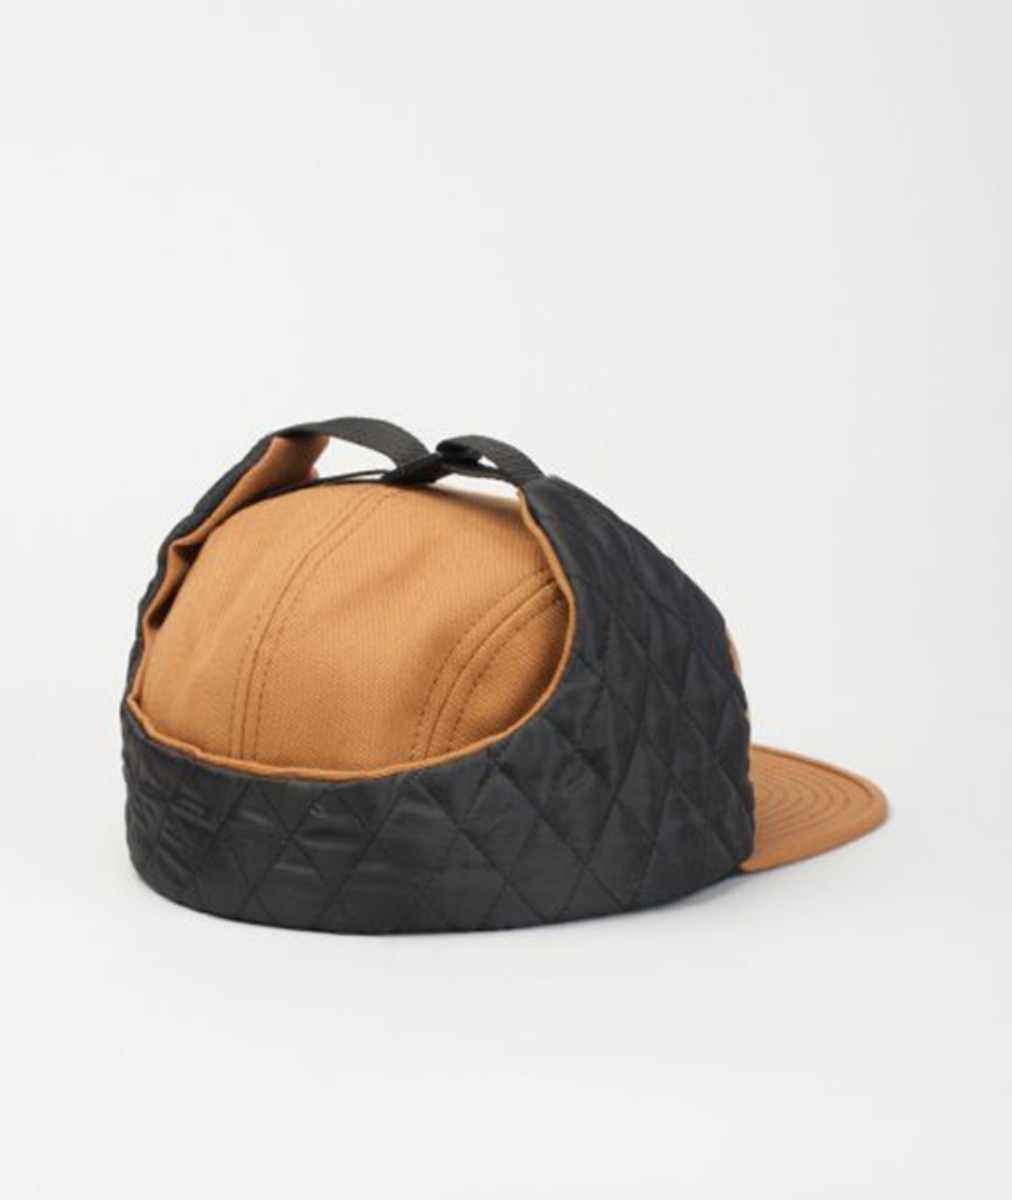 norse-projects-earflap-duck-canvas-cap-06